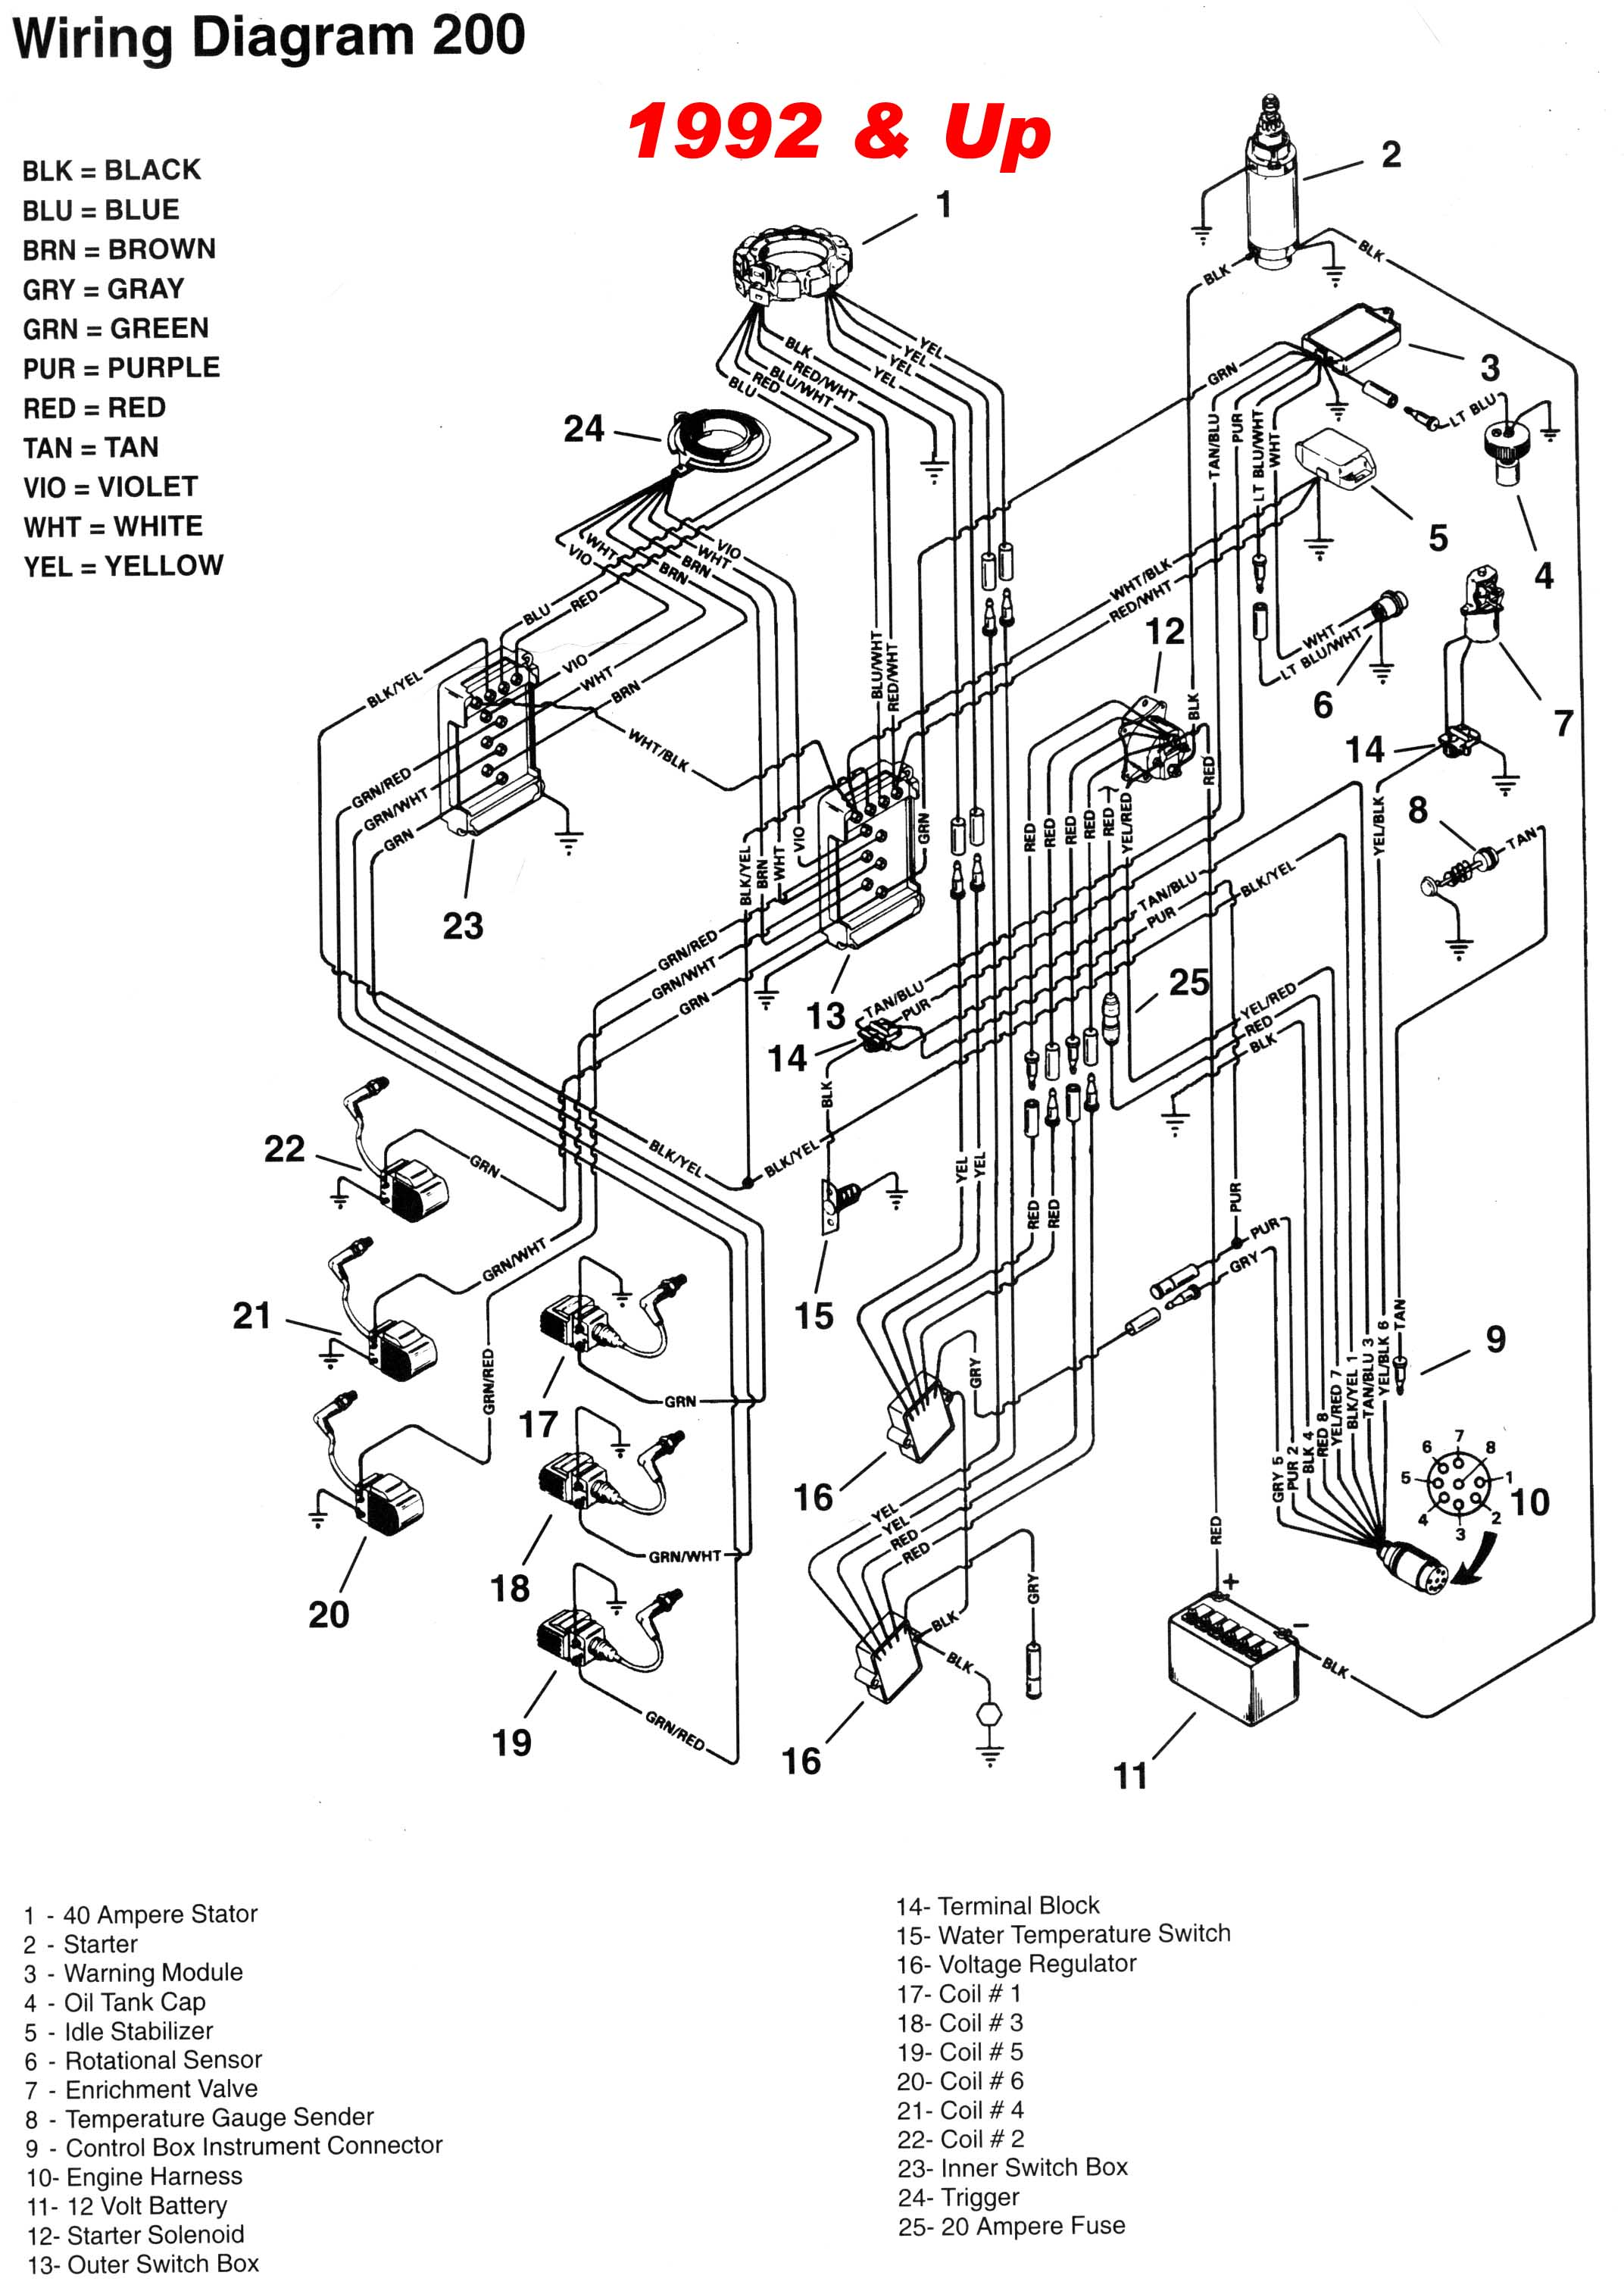 mercury_92up_200_wiring mercury outboard 2 5 and 3 0l v6 and gearcase faq mercury outboard starter solenoid wiring diagram at alyssarenee.co